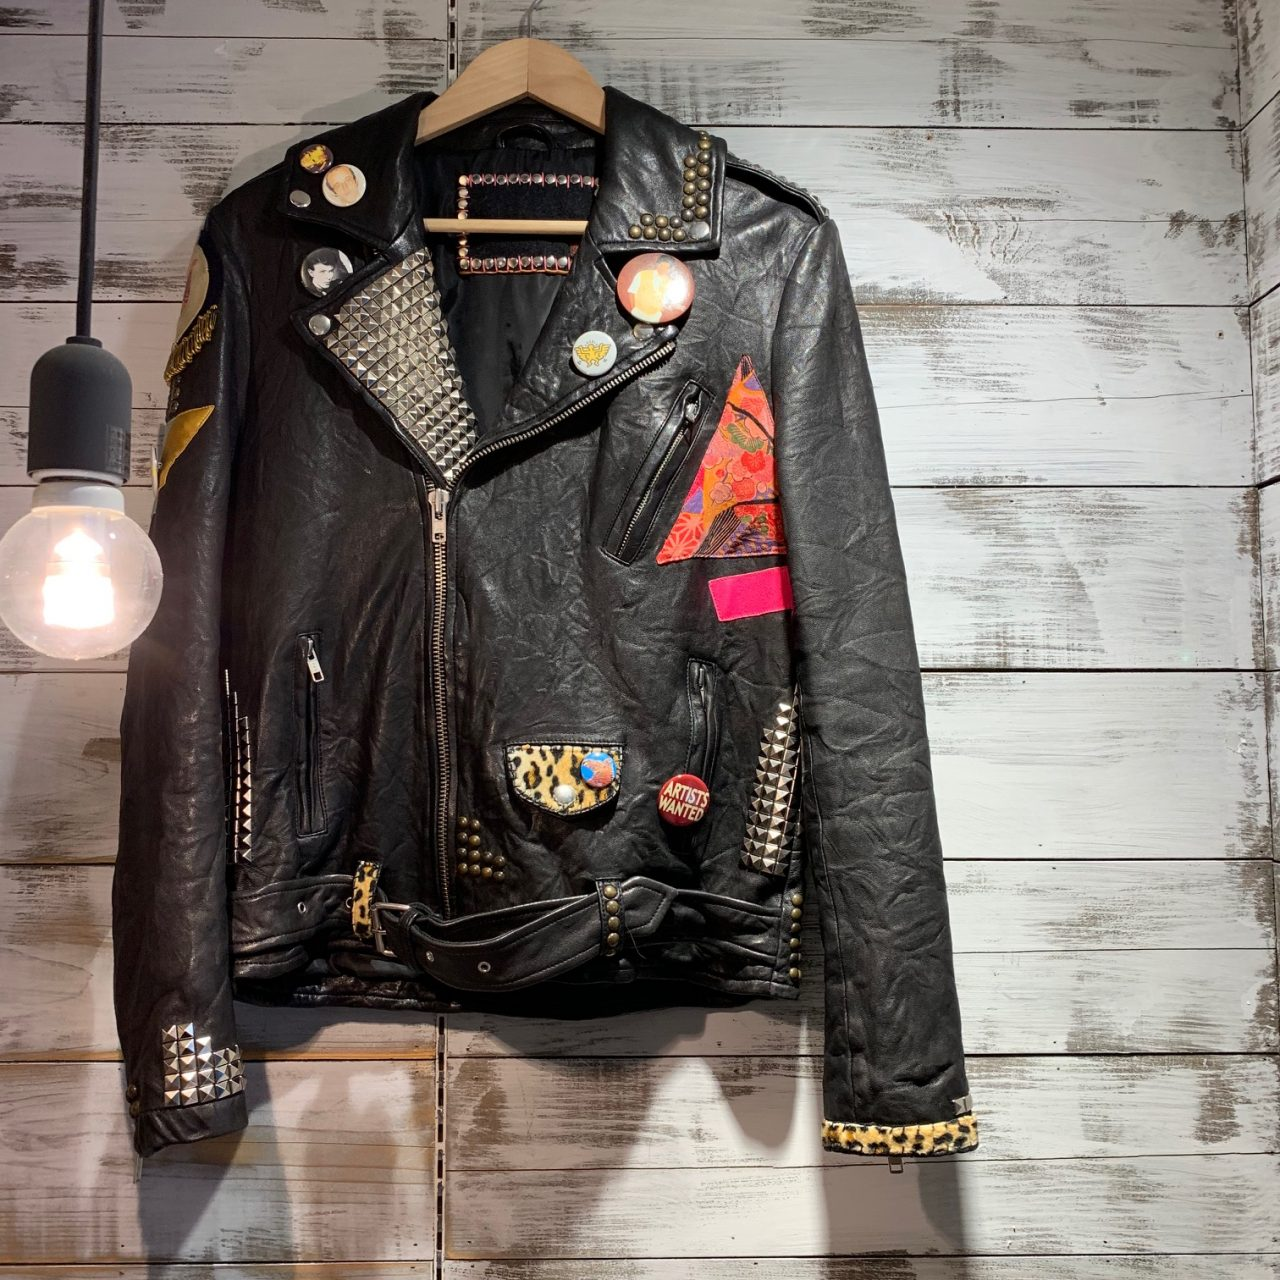 FREE CITY 18AW MOTORCYCLE LEATHER JACKET スタッズバッジダブルレザーライダース